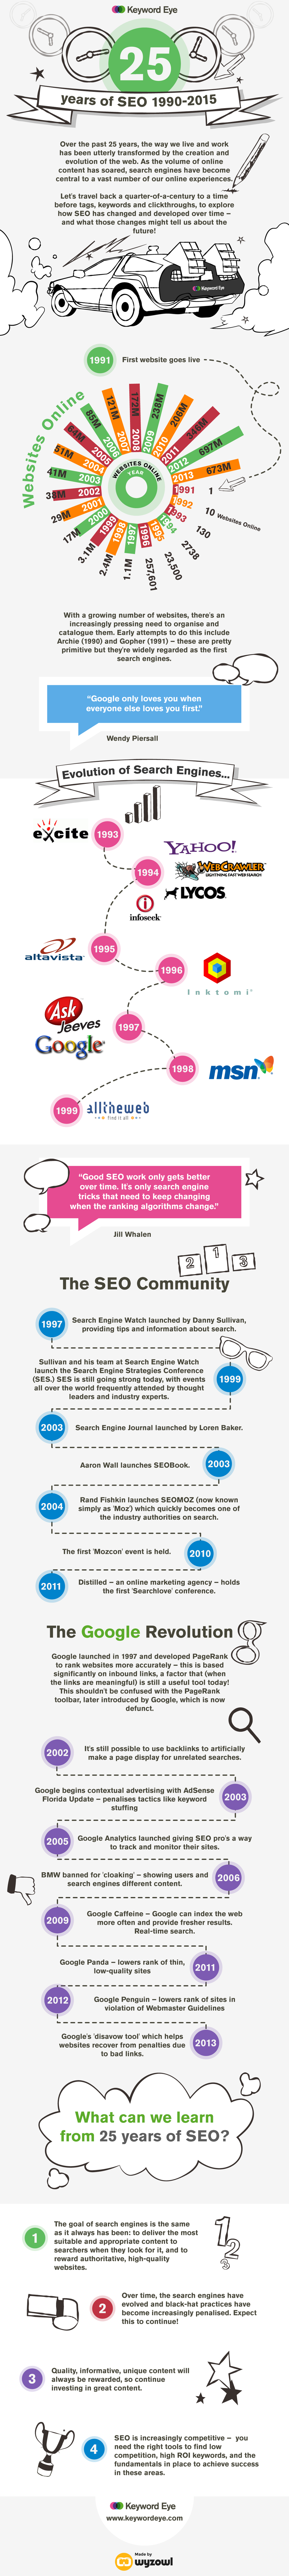 25-Years-of-SEO-infographic